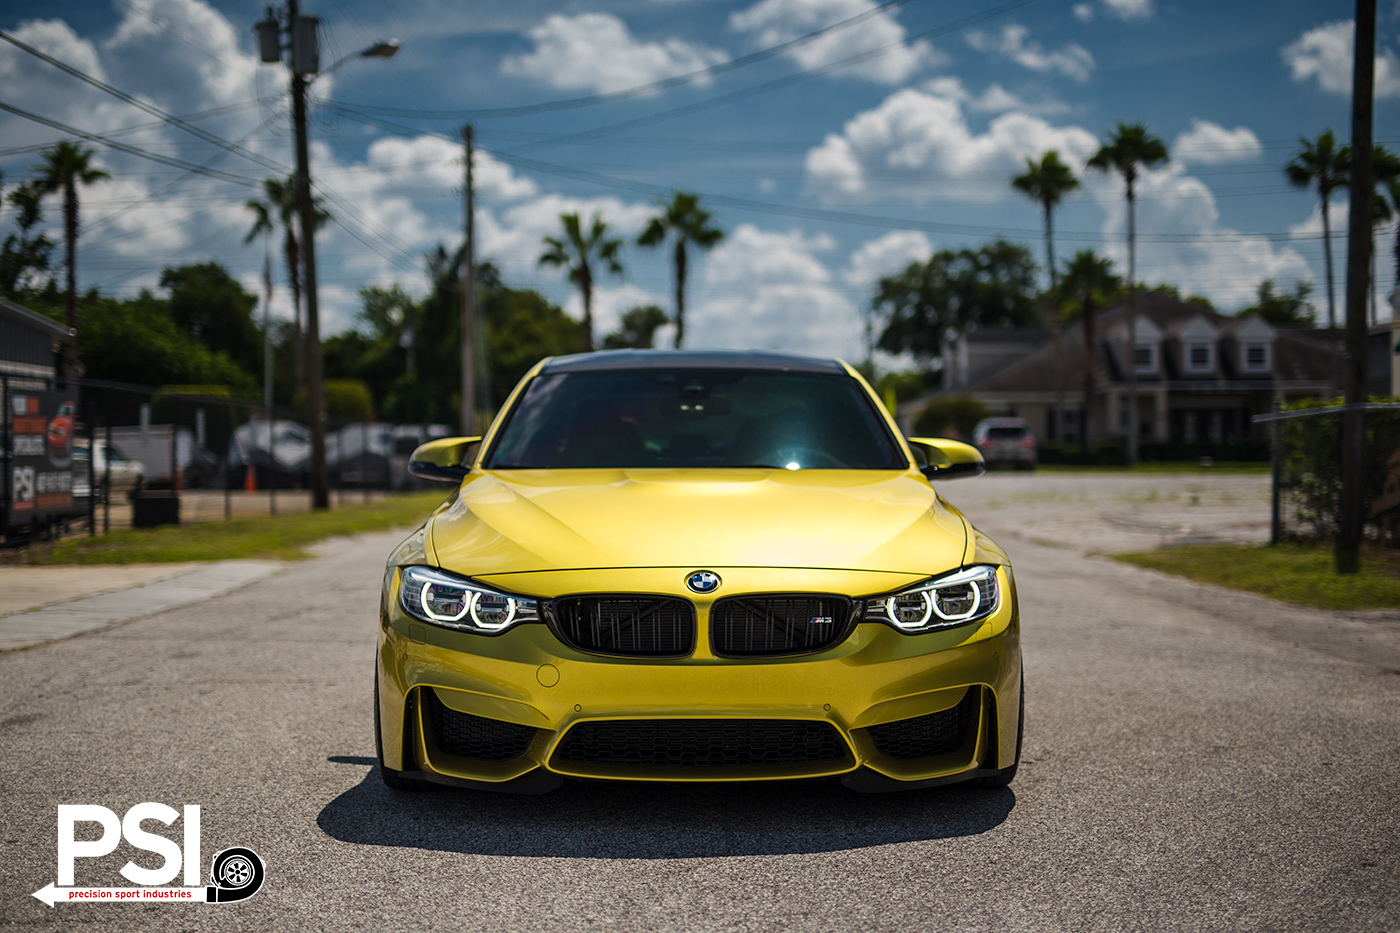 the best bmw m3 ever is rh bmwblog com 2006 BMW M3 Convertible 2003 BMW M3 Convertible